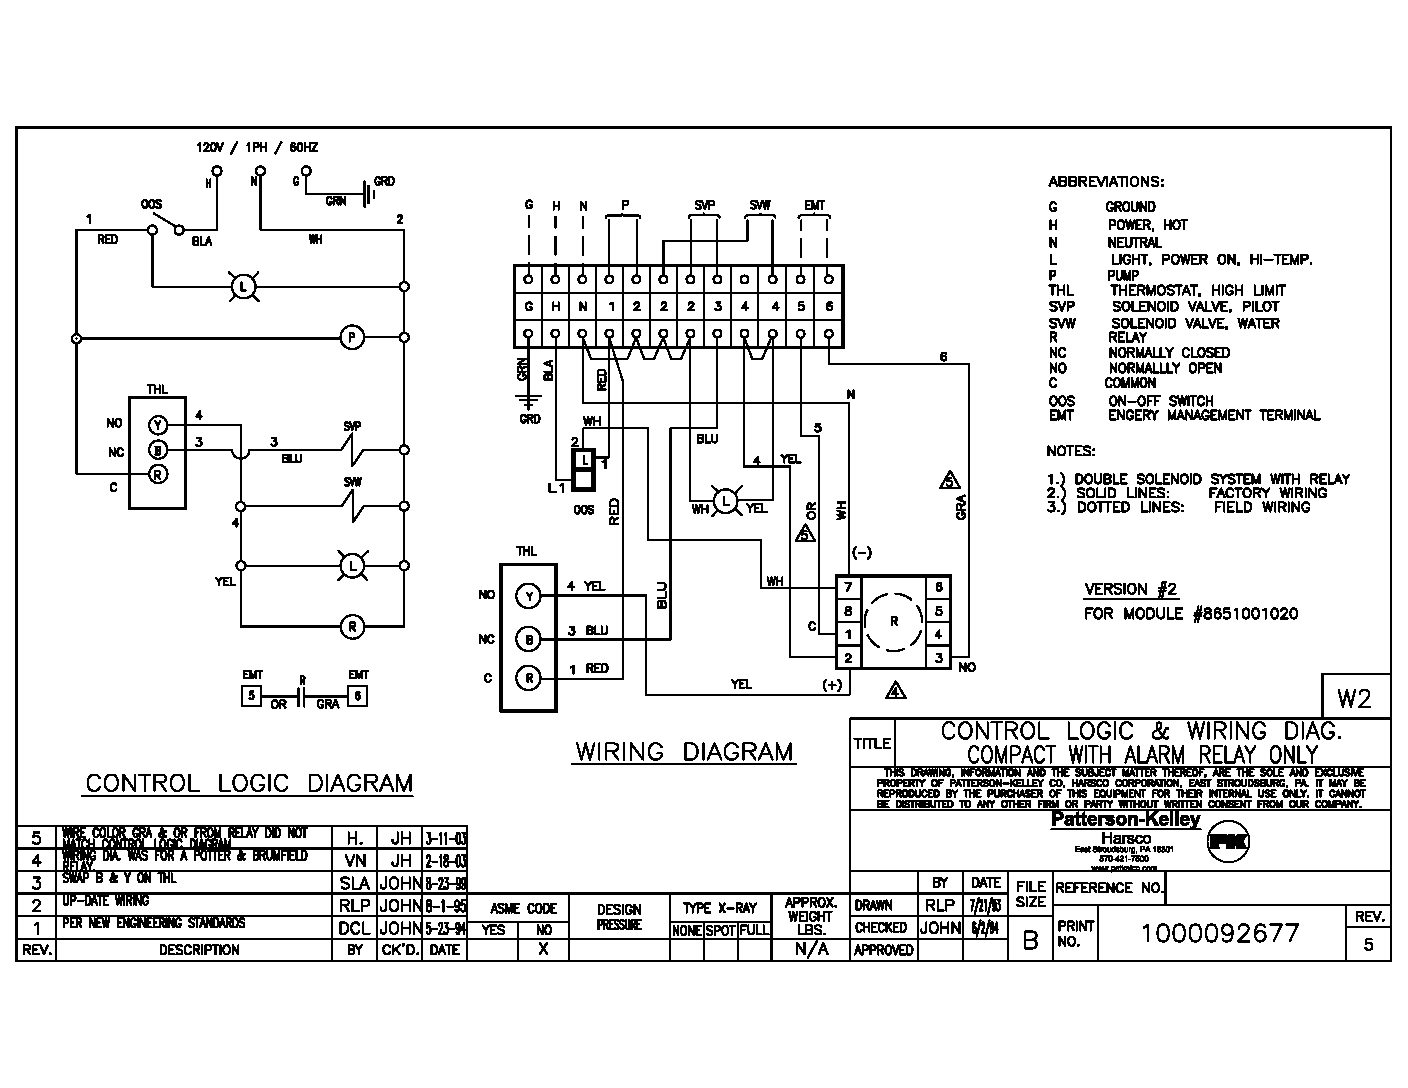 hight resolution of compact control logic and wiring diagram with alarm relay only